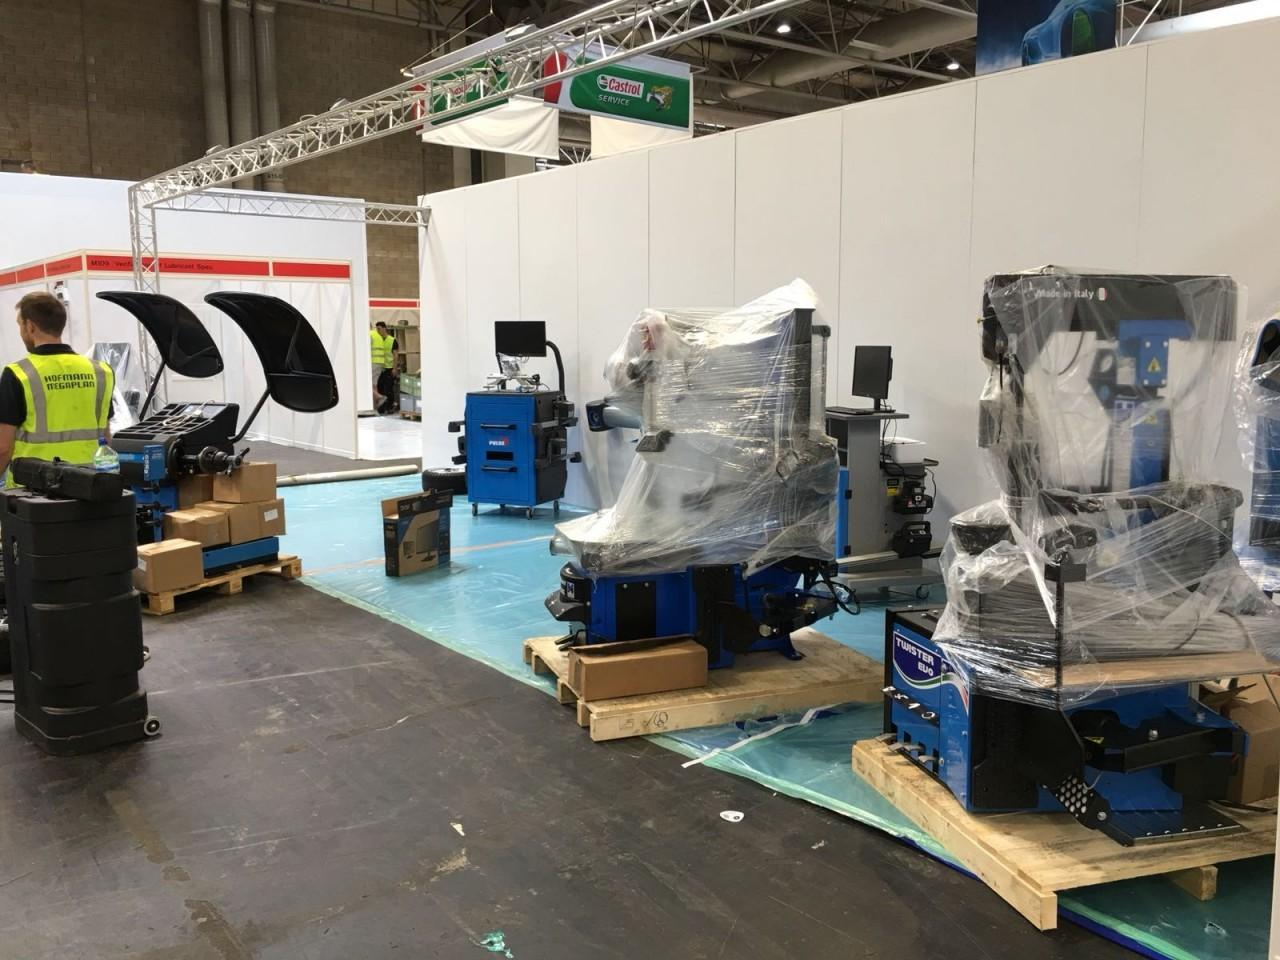 Unpacking the Tyre Fitting Equipment at Automechanika 2018